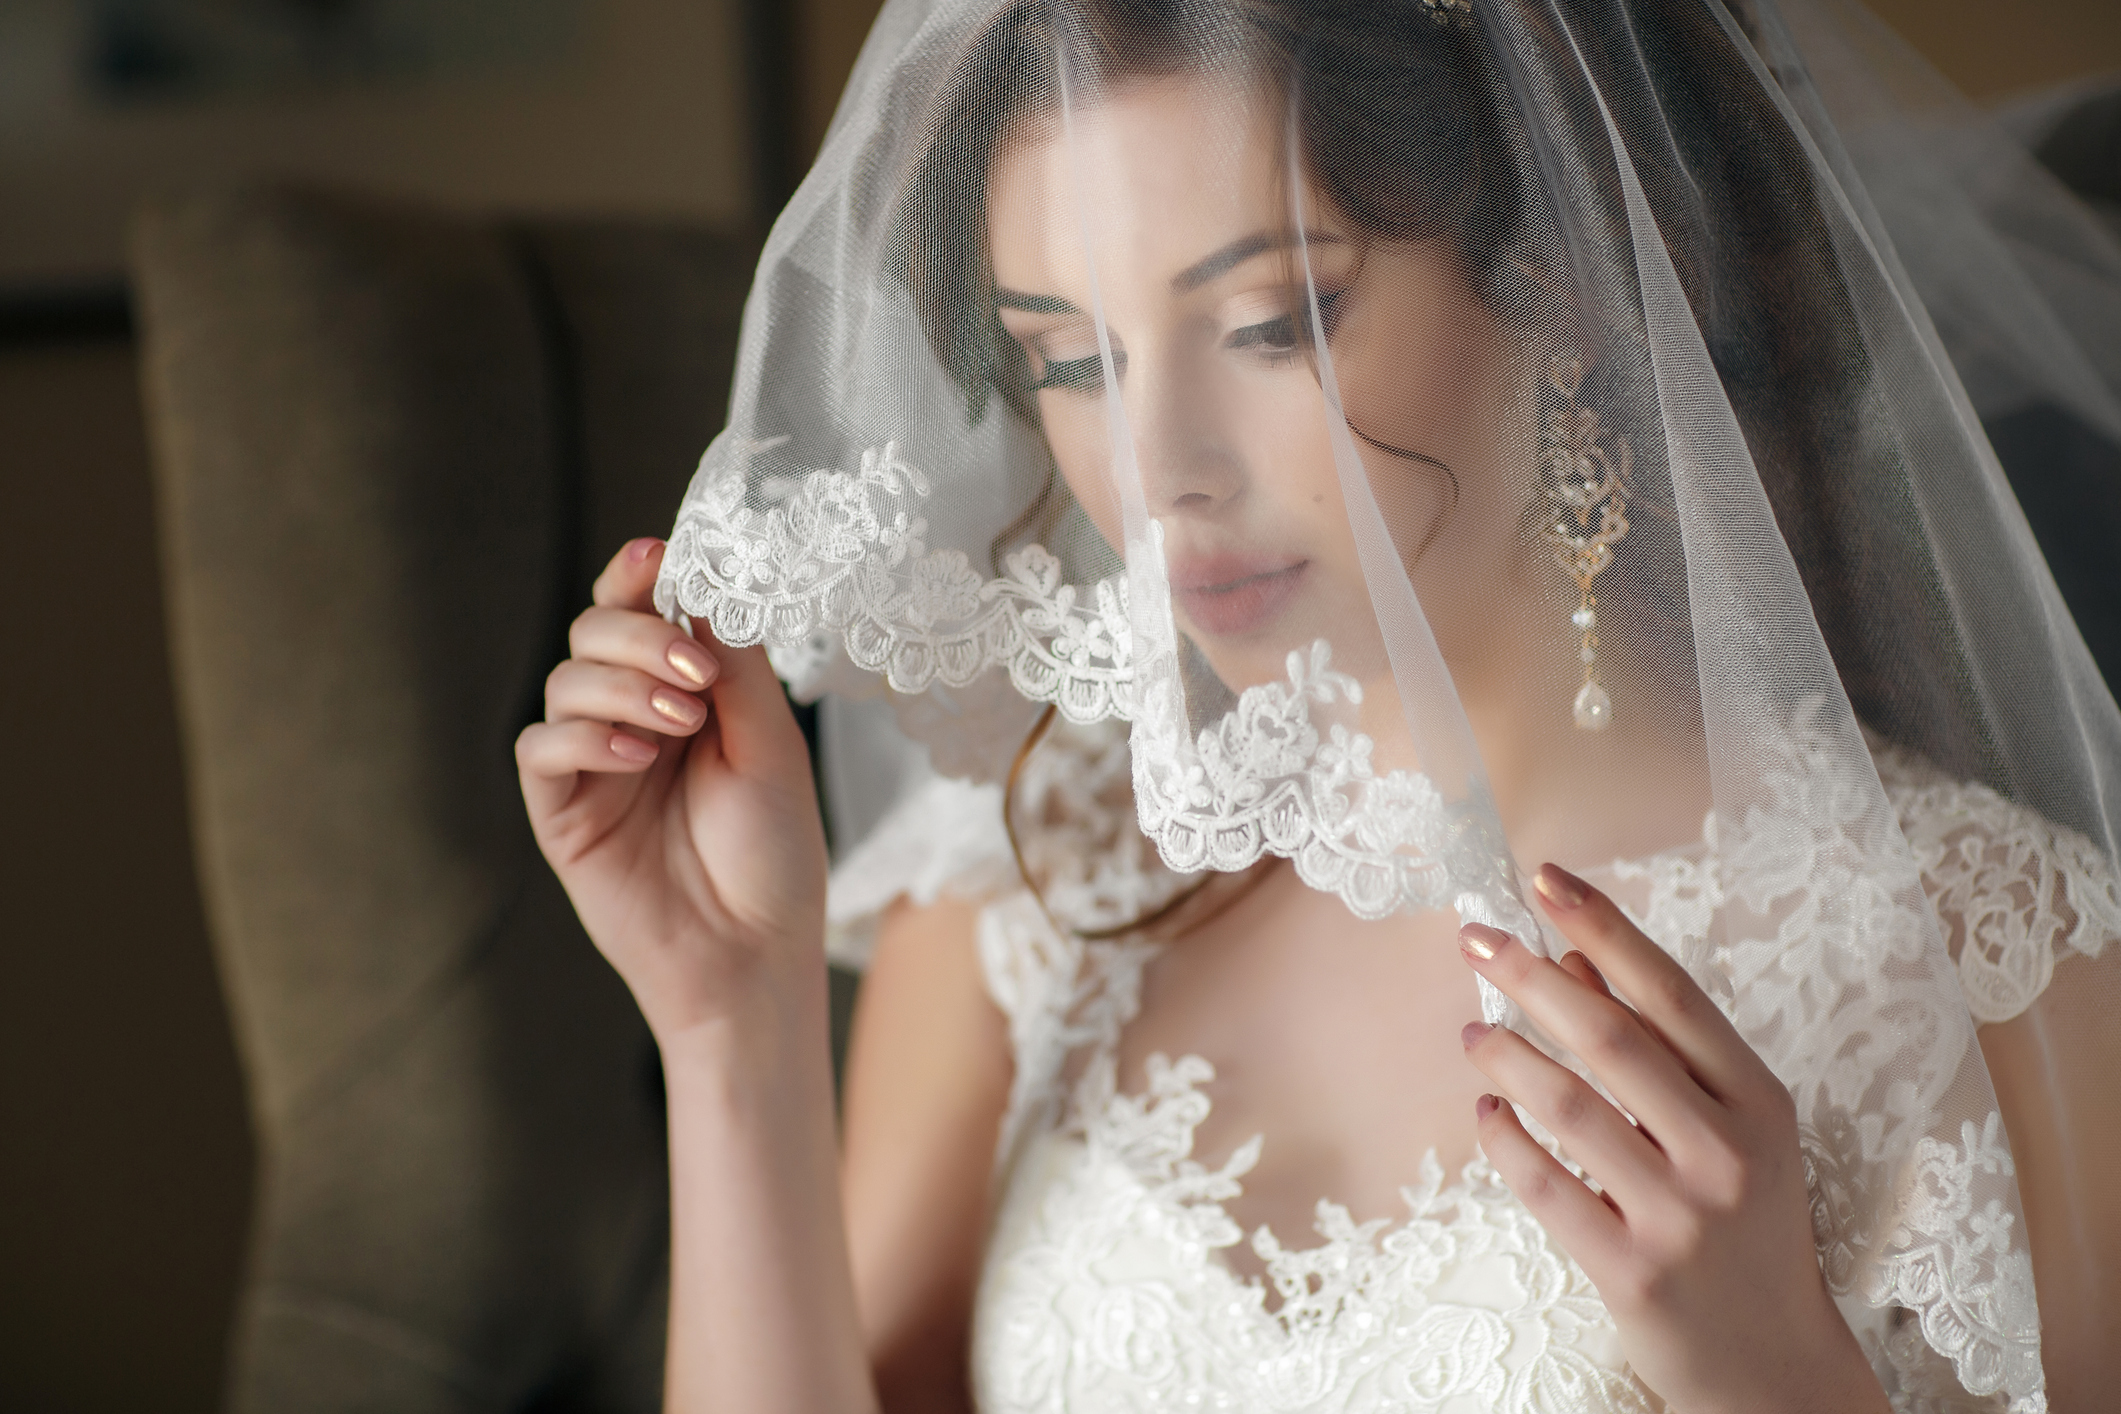 How To Wash A Wedding Veil And Remove Old Stains At Home